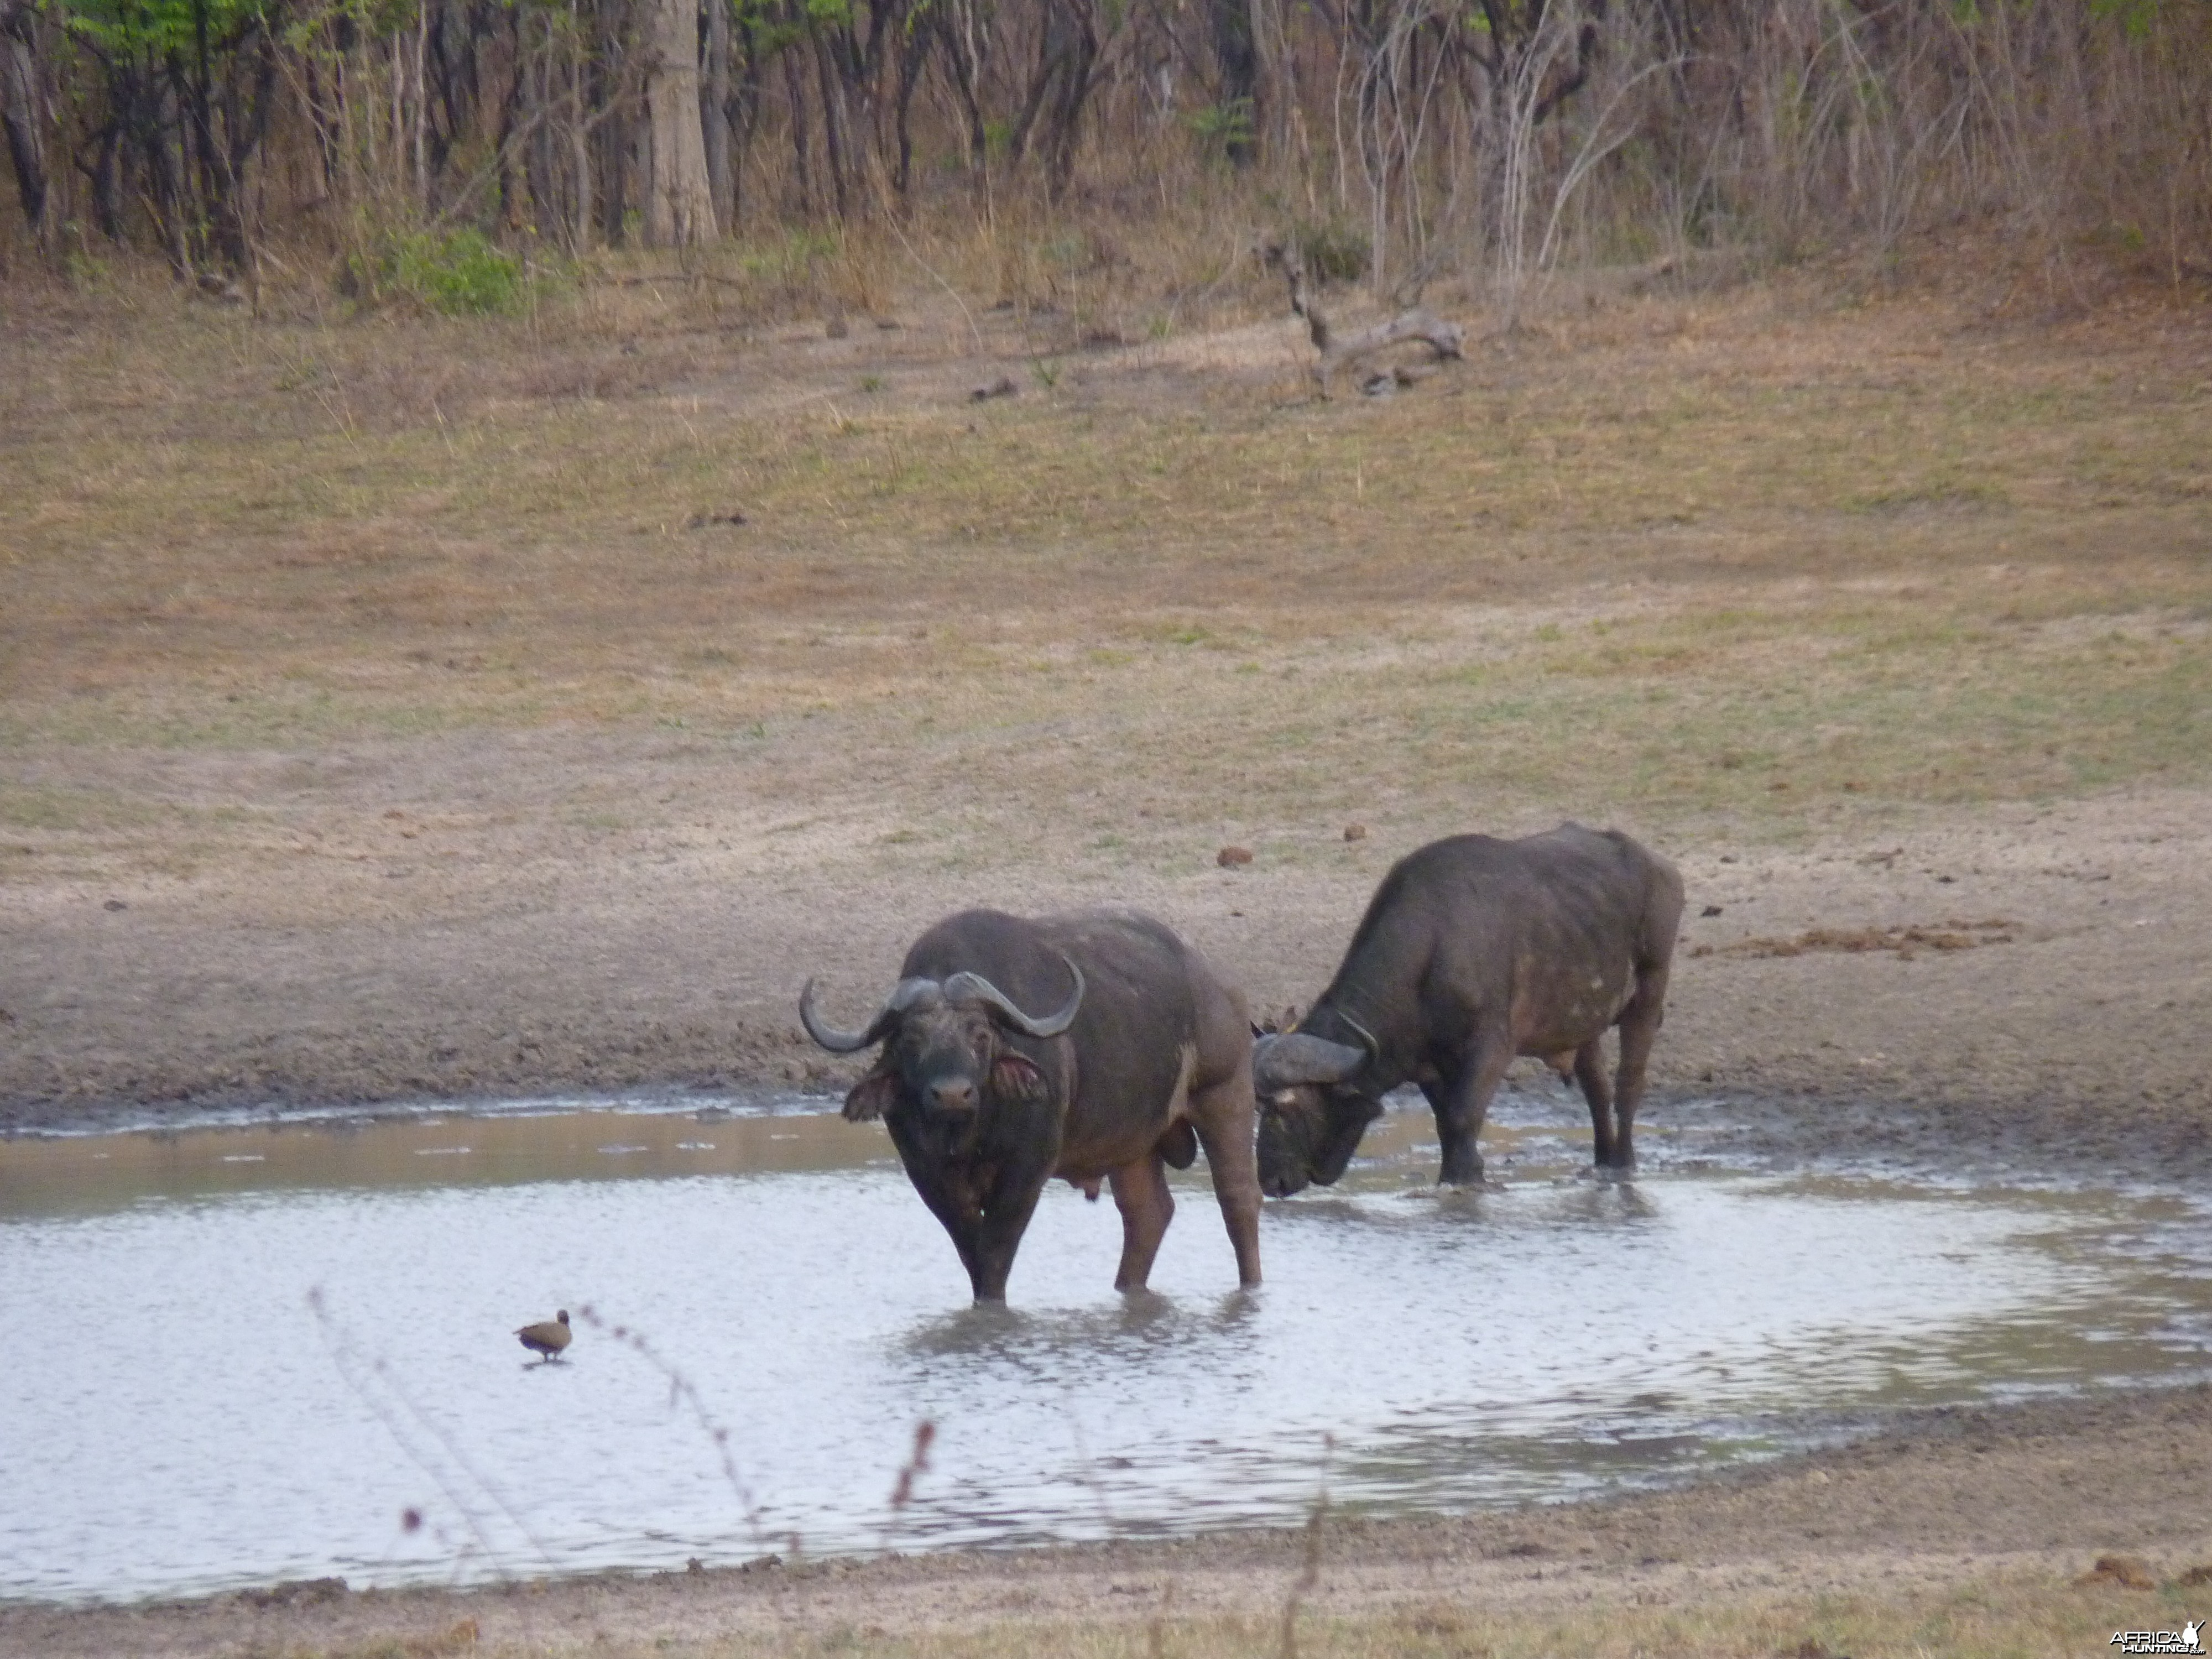 Cape Buffalo hunting in Tanzania